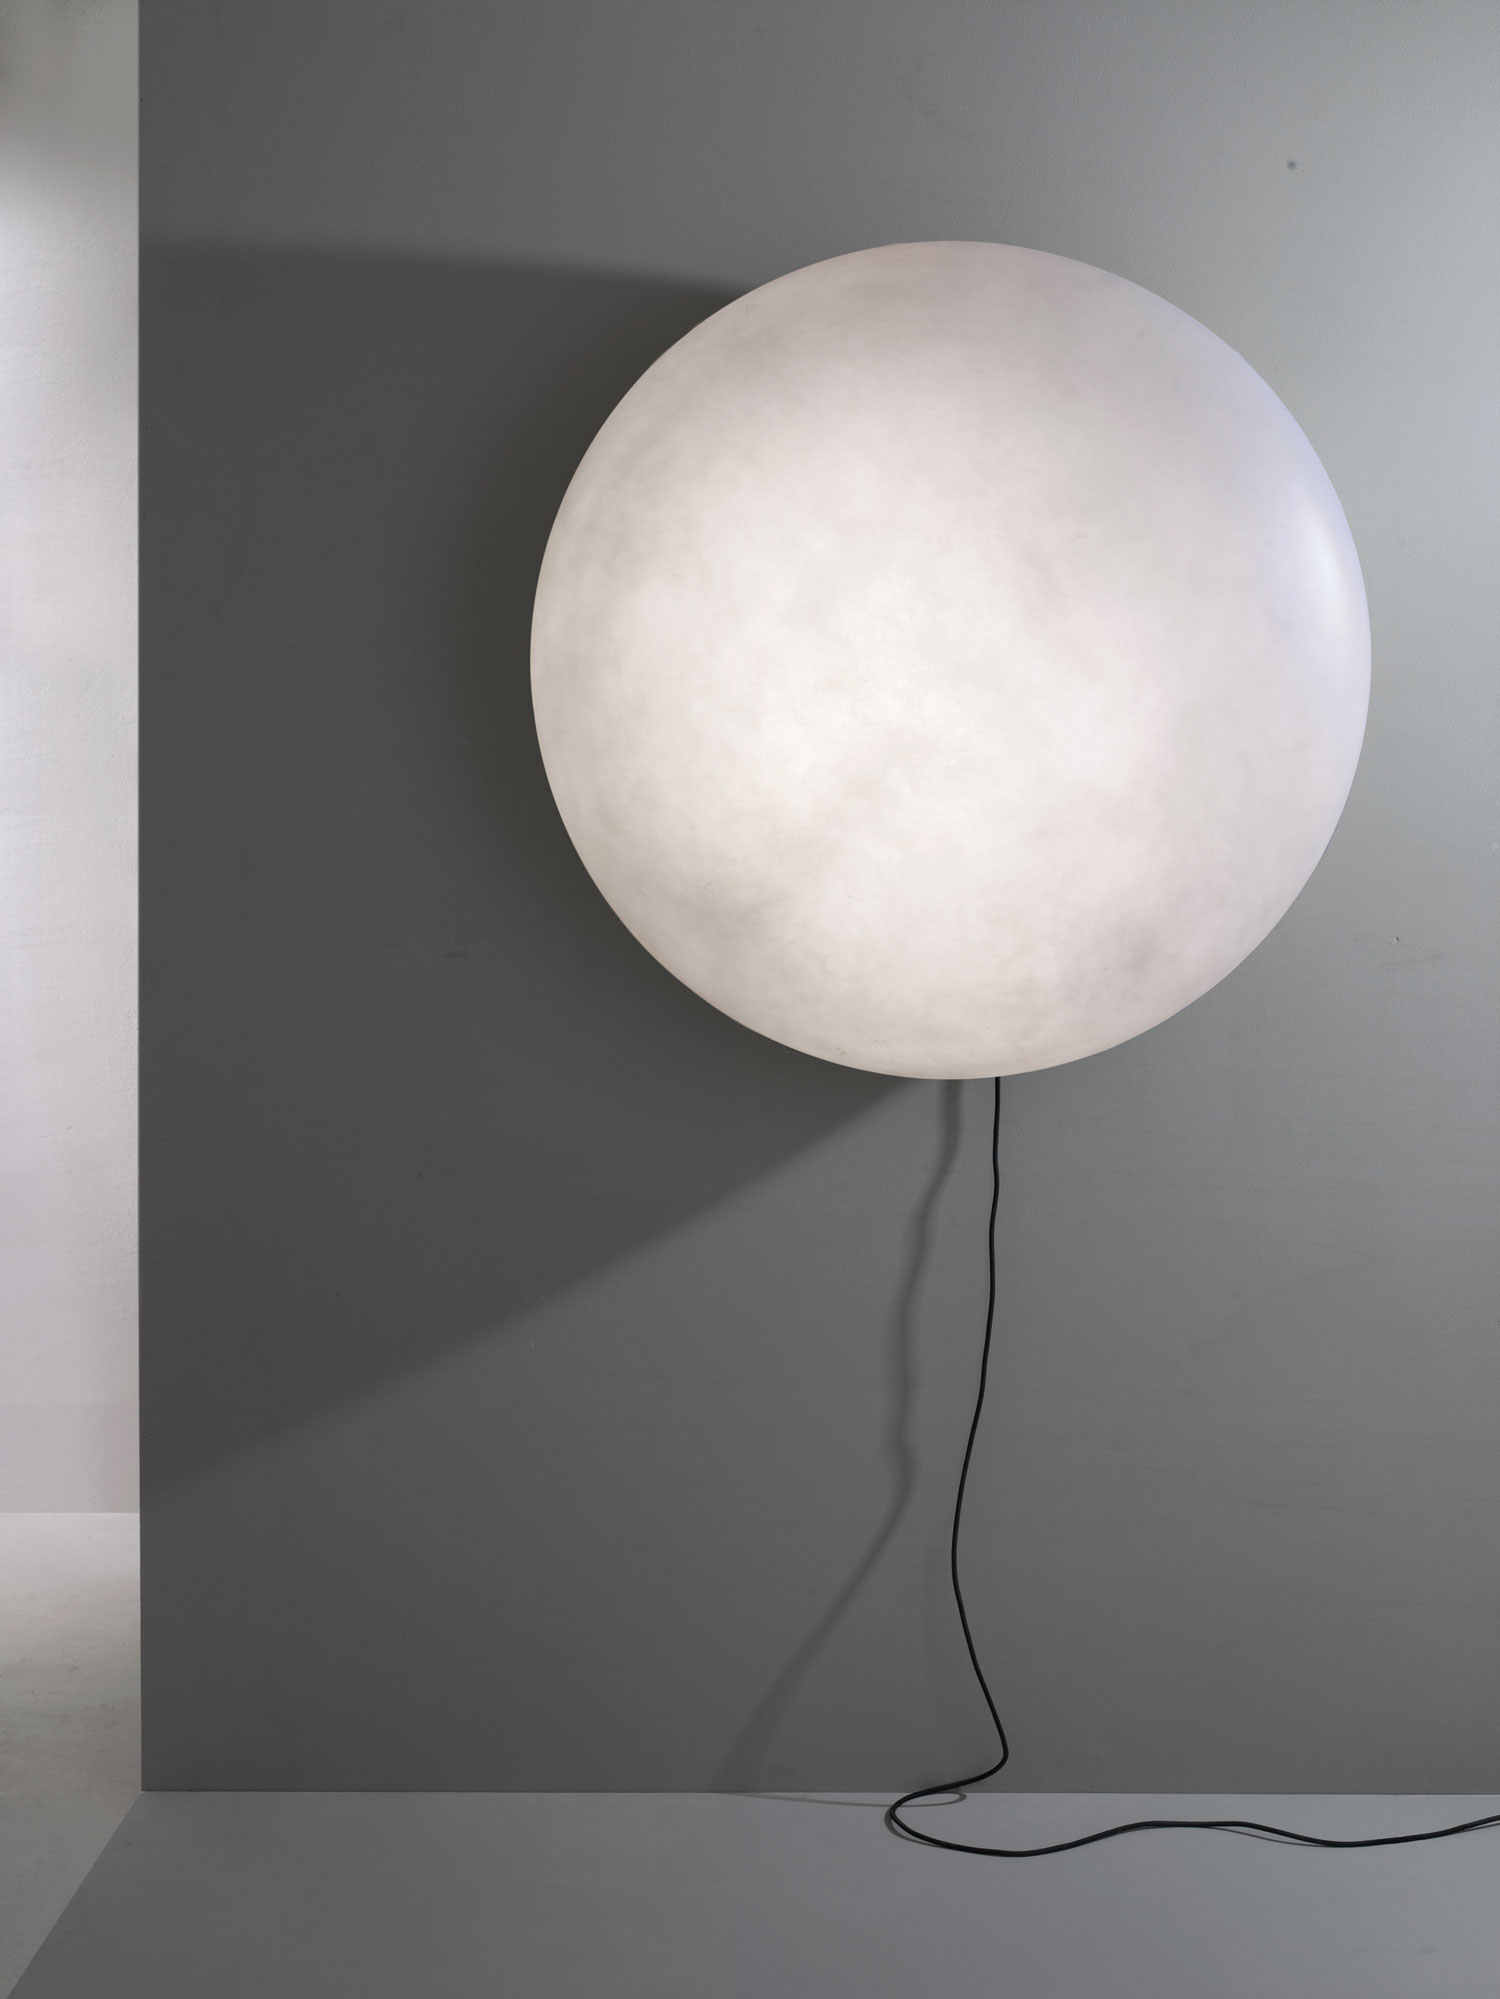 Etty-by-Imperfetto-Lab-Maison-Object-2015-Yellowtrace-51.jpg